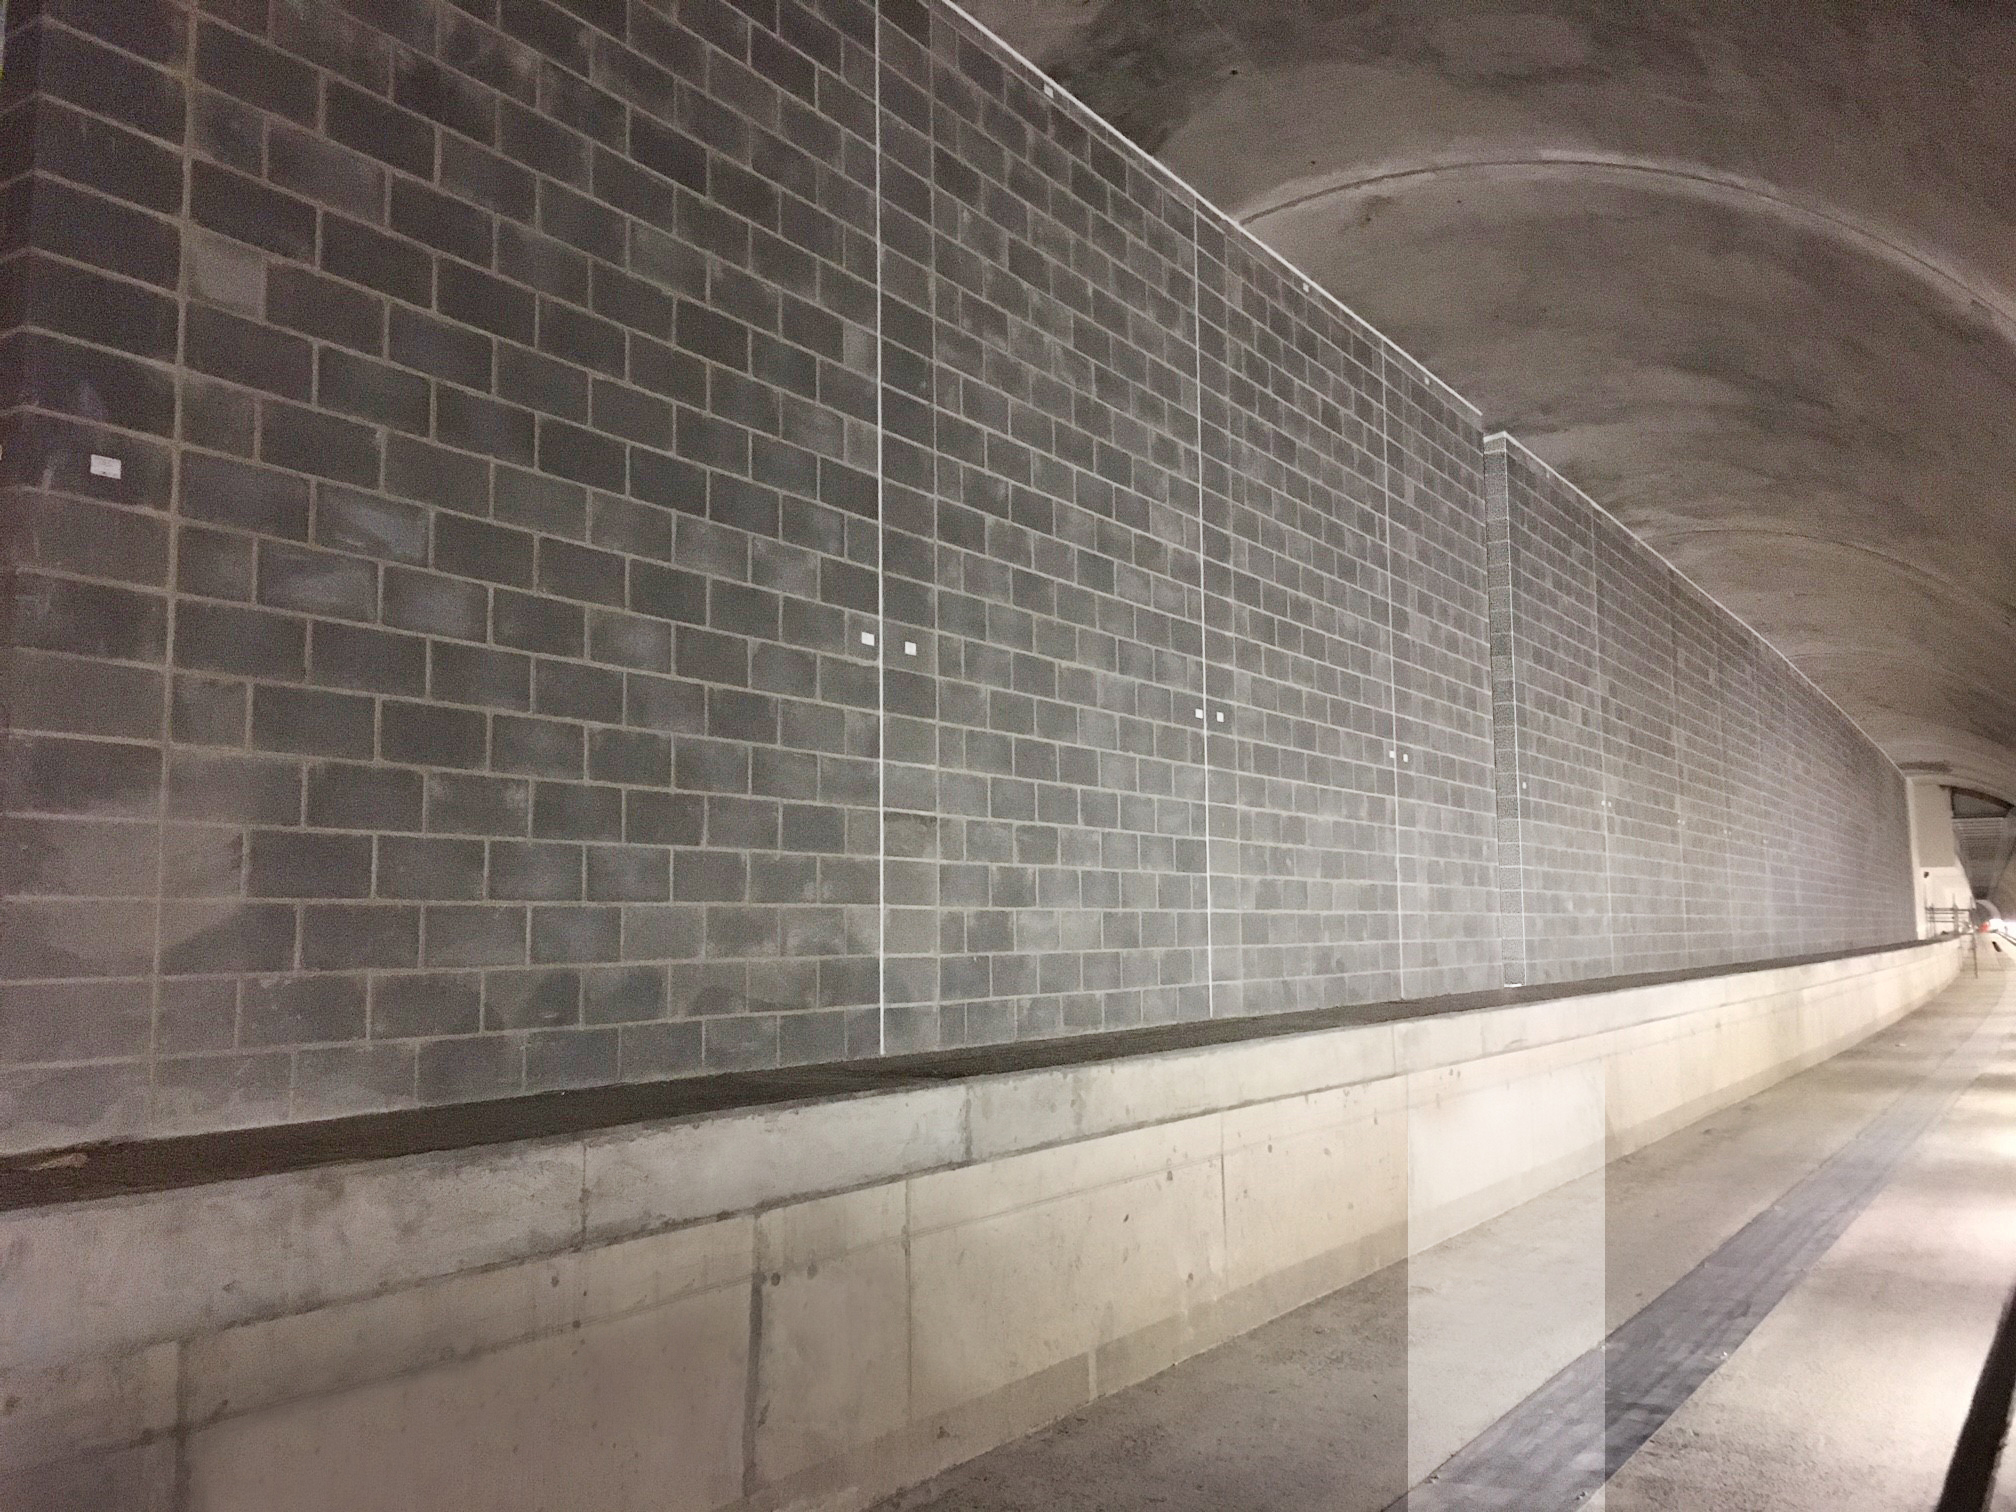 Farringdon Tunnels